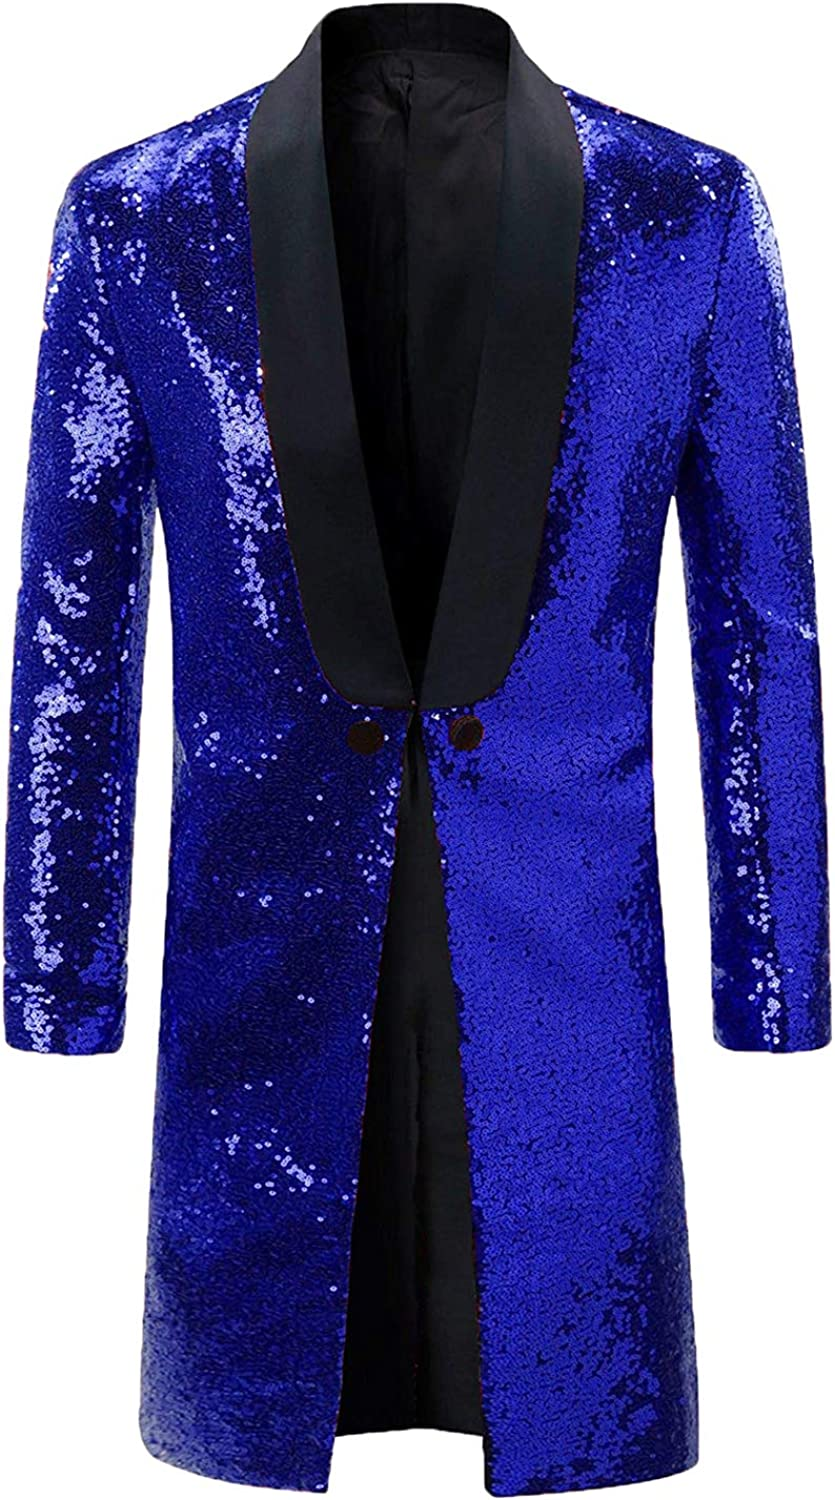 DGMJ Purchase Sequins Tailcoat Circus Costume for Men Dinne trust Party Stylish